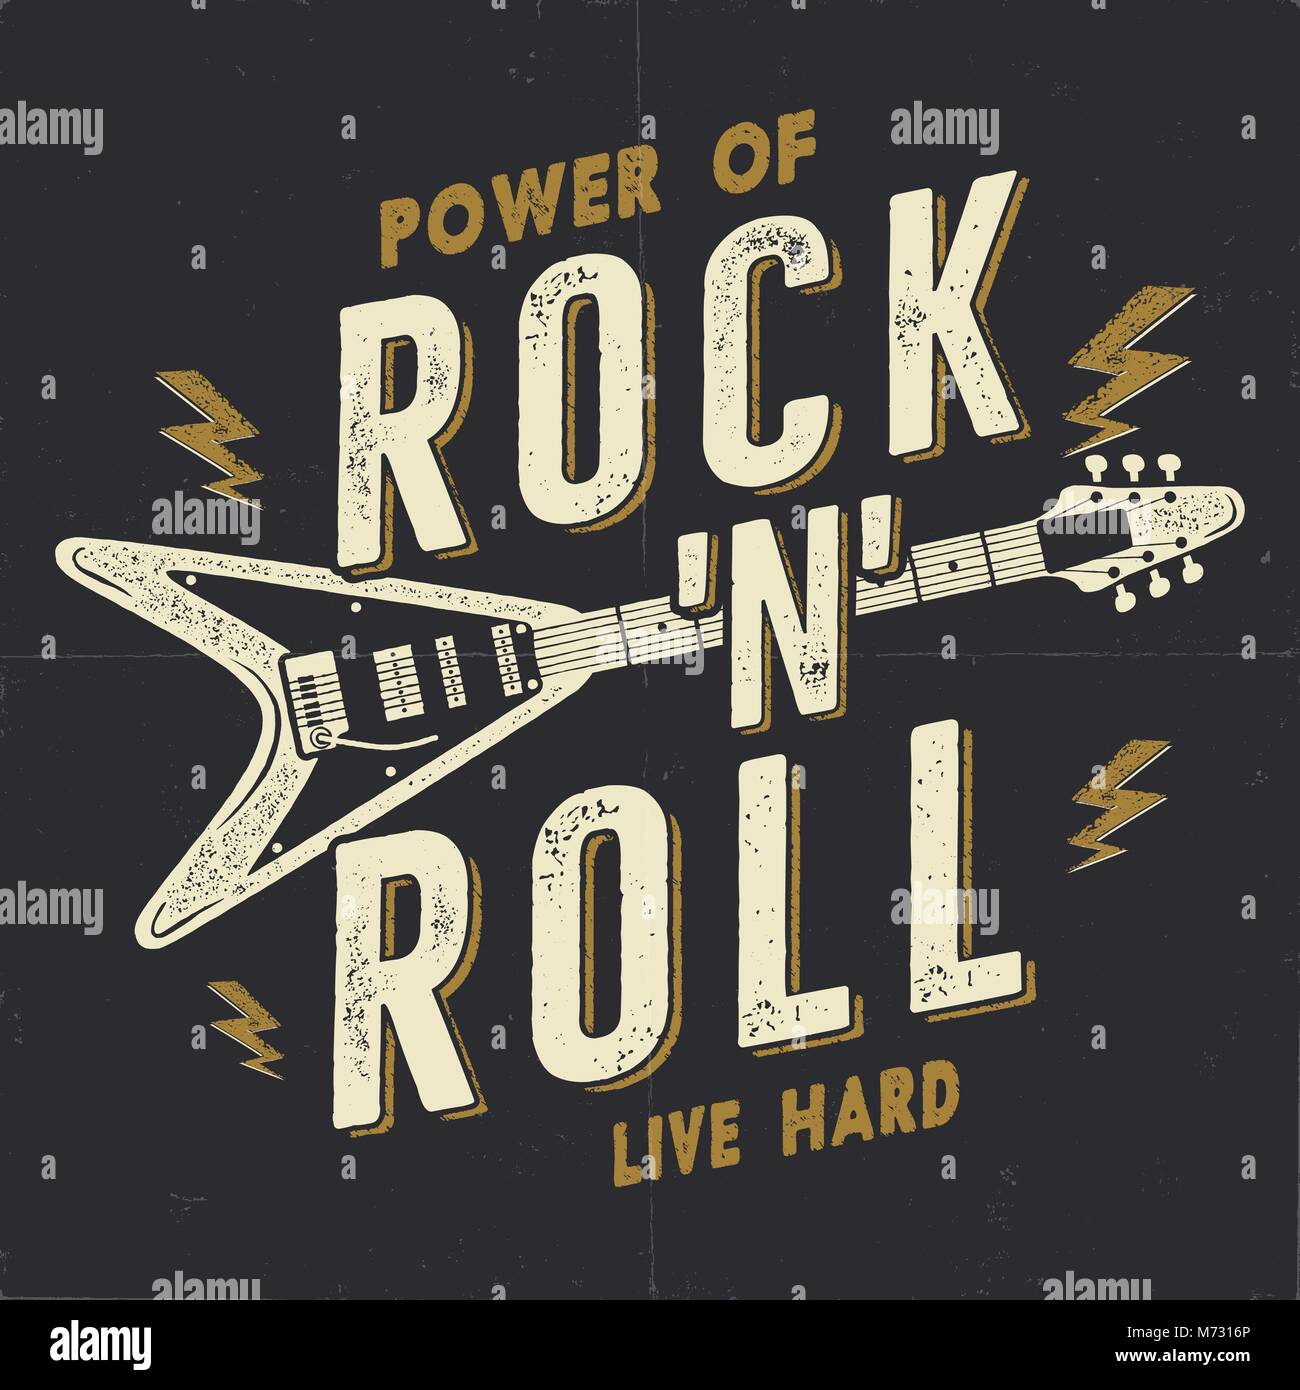 Vintage Hand Drawn Rock N Roll Poster Music Hard Tee Graphics Design T Shirt Power Of Quote